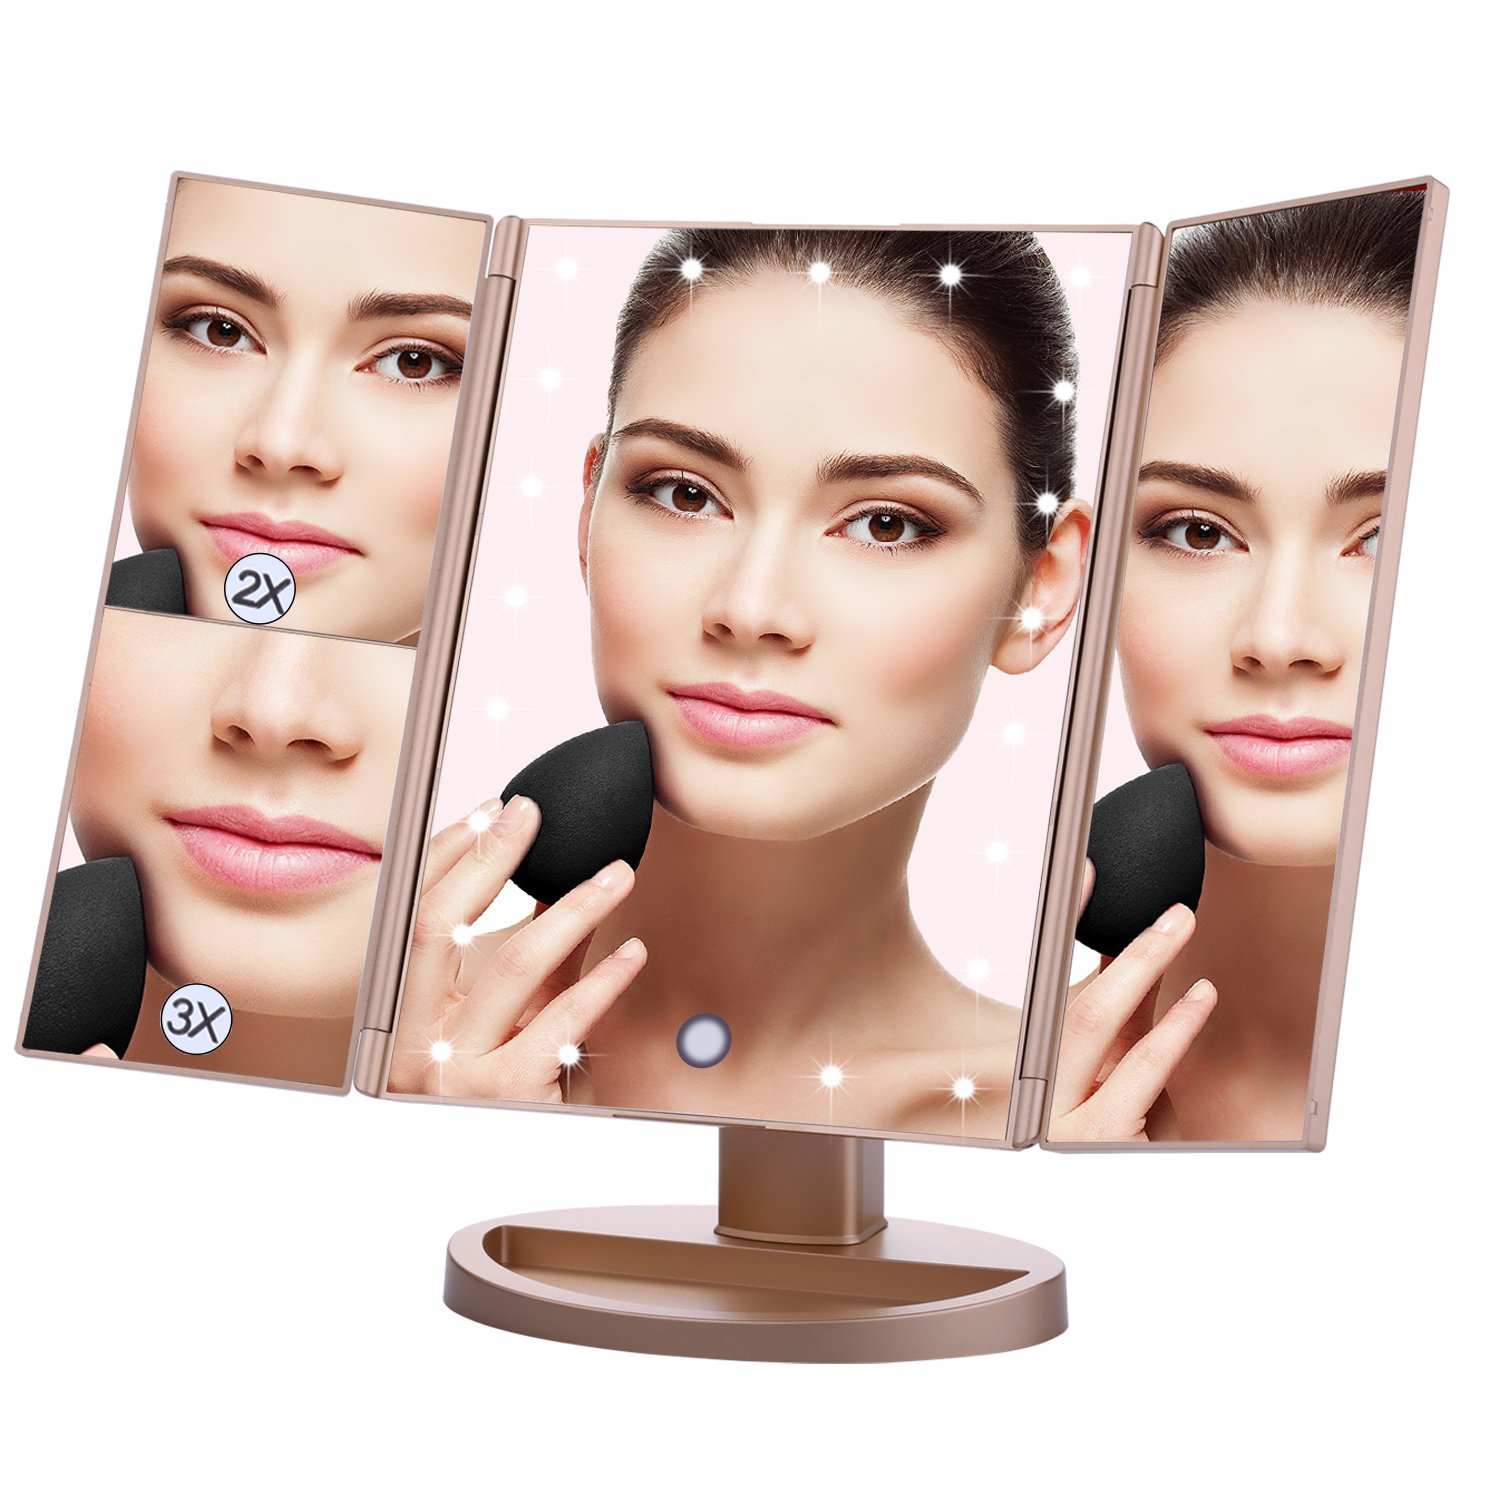 Lighted Makeup Mirror EMOCCI Tri-Fold Vanity Mirrors With 3X 2X 1 Magnification,USB Charging 180 Degree Free Rotation Mirror For Women Girls Cosmetic Make Up Bathroom Countertop Use (Gold)